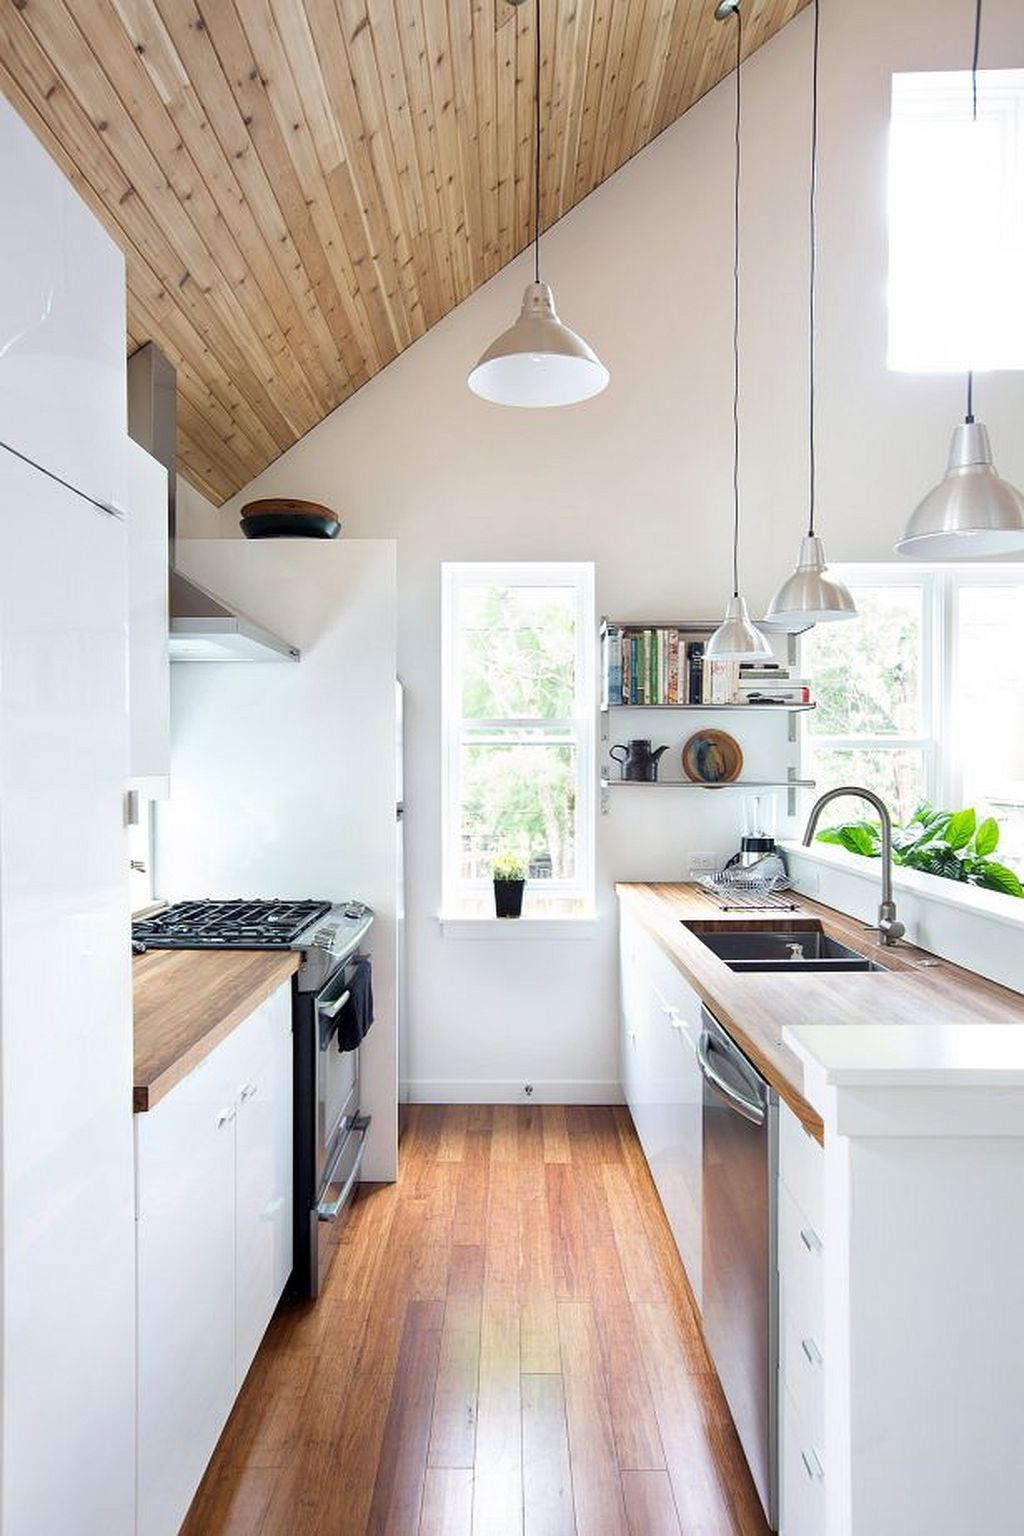 galley kitchen remodel ideas | galley kitchen remodel ideas layout | galley kitchen remodel ideas small | galley kitchen remodel ideas countertops | galley kitchen remodel ideas floor plans | Galley Kitchen Remodel Ideas | Galley Kitchen Remodel Ideas | #galley #kitchen #remodel Right now galley kitchens are prevalent in an apartment or small home. Galley kitchen remodel ideas must be efficient for cooking also for the meal space. #ikeagalleykitchen